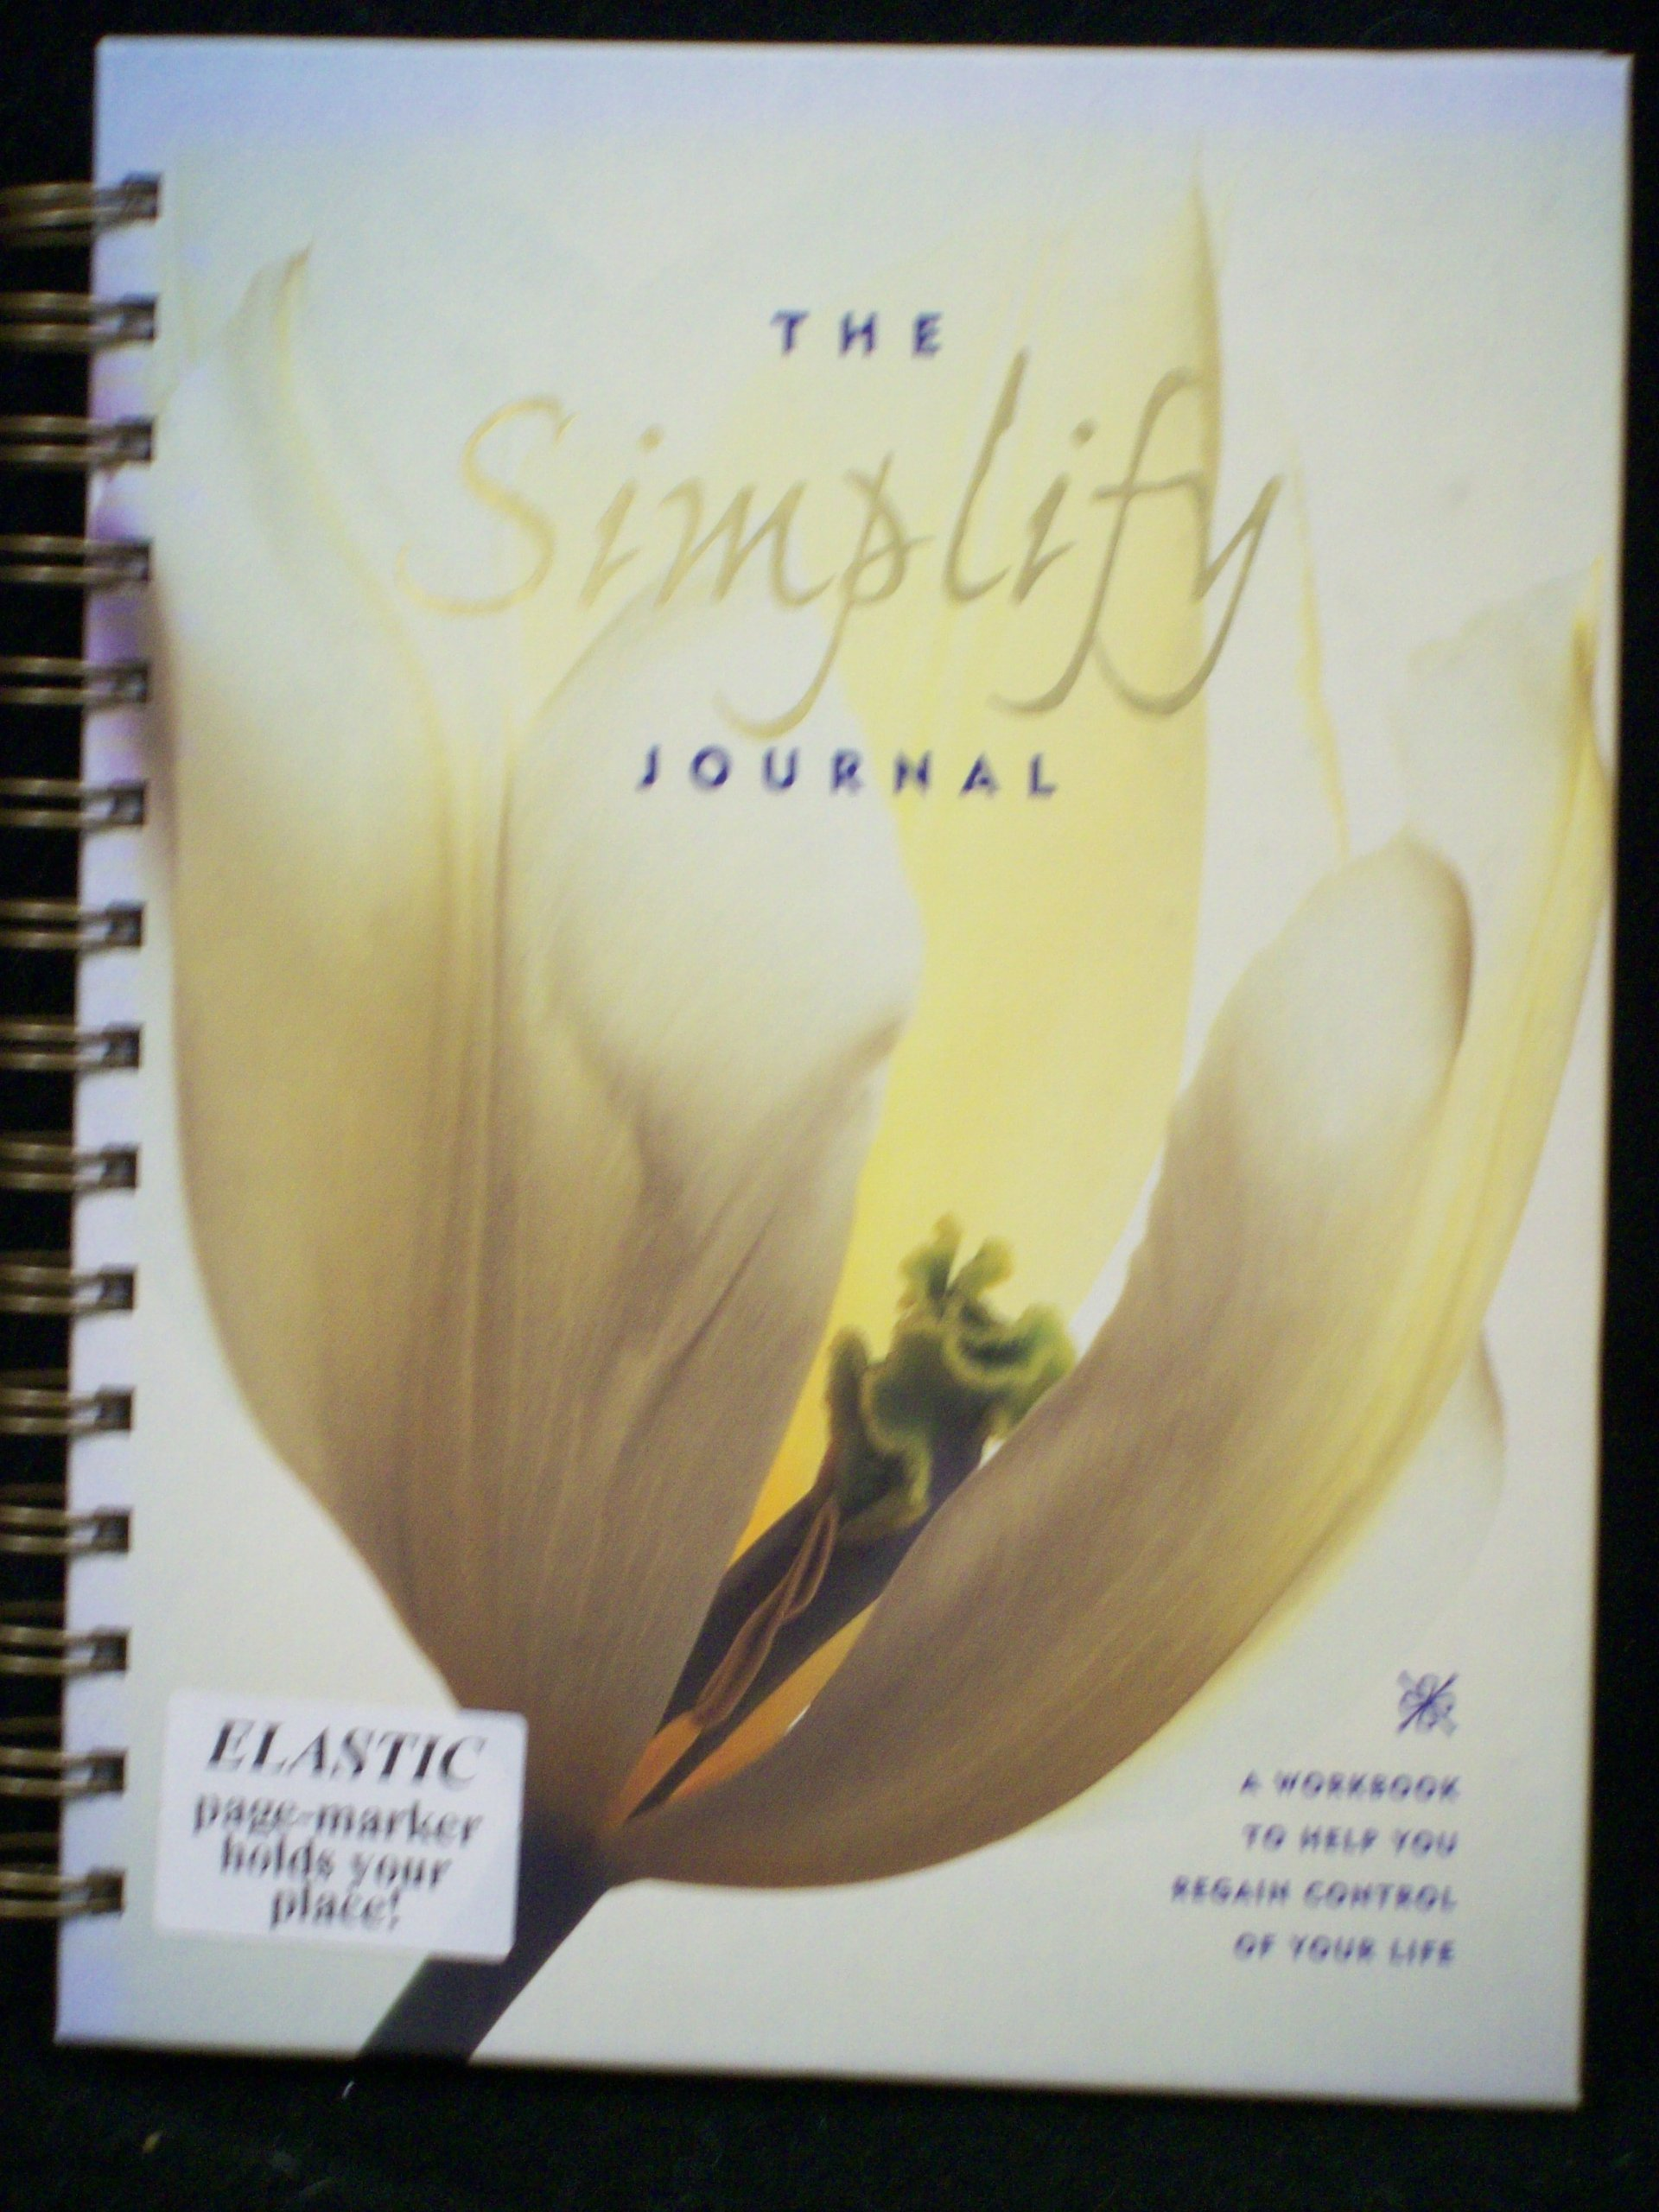 The Simplify Journal: A Workbook to Help You Regain Control of Your Life (Guided Journals)